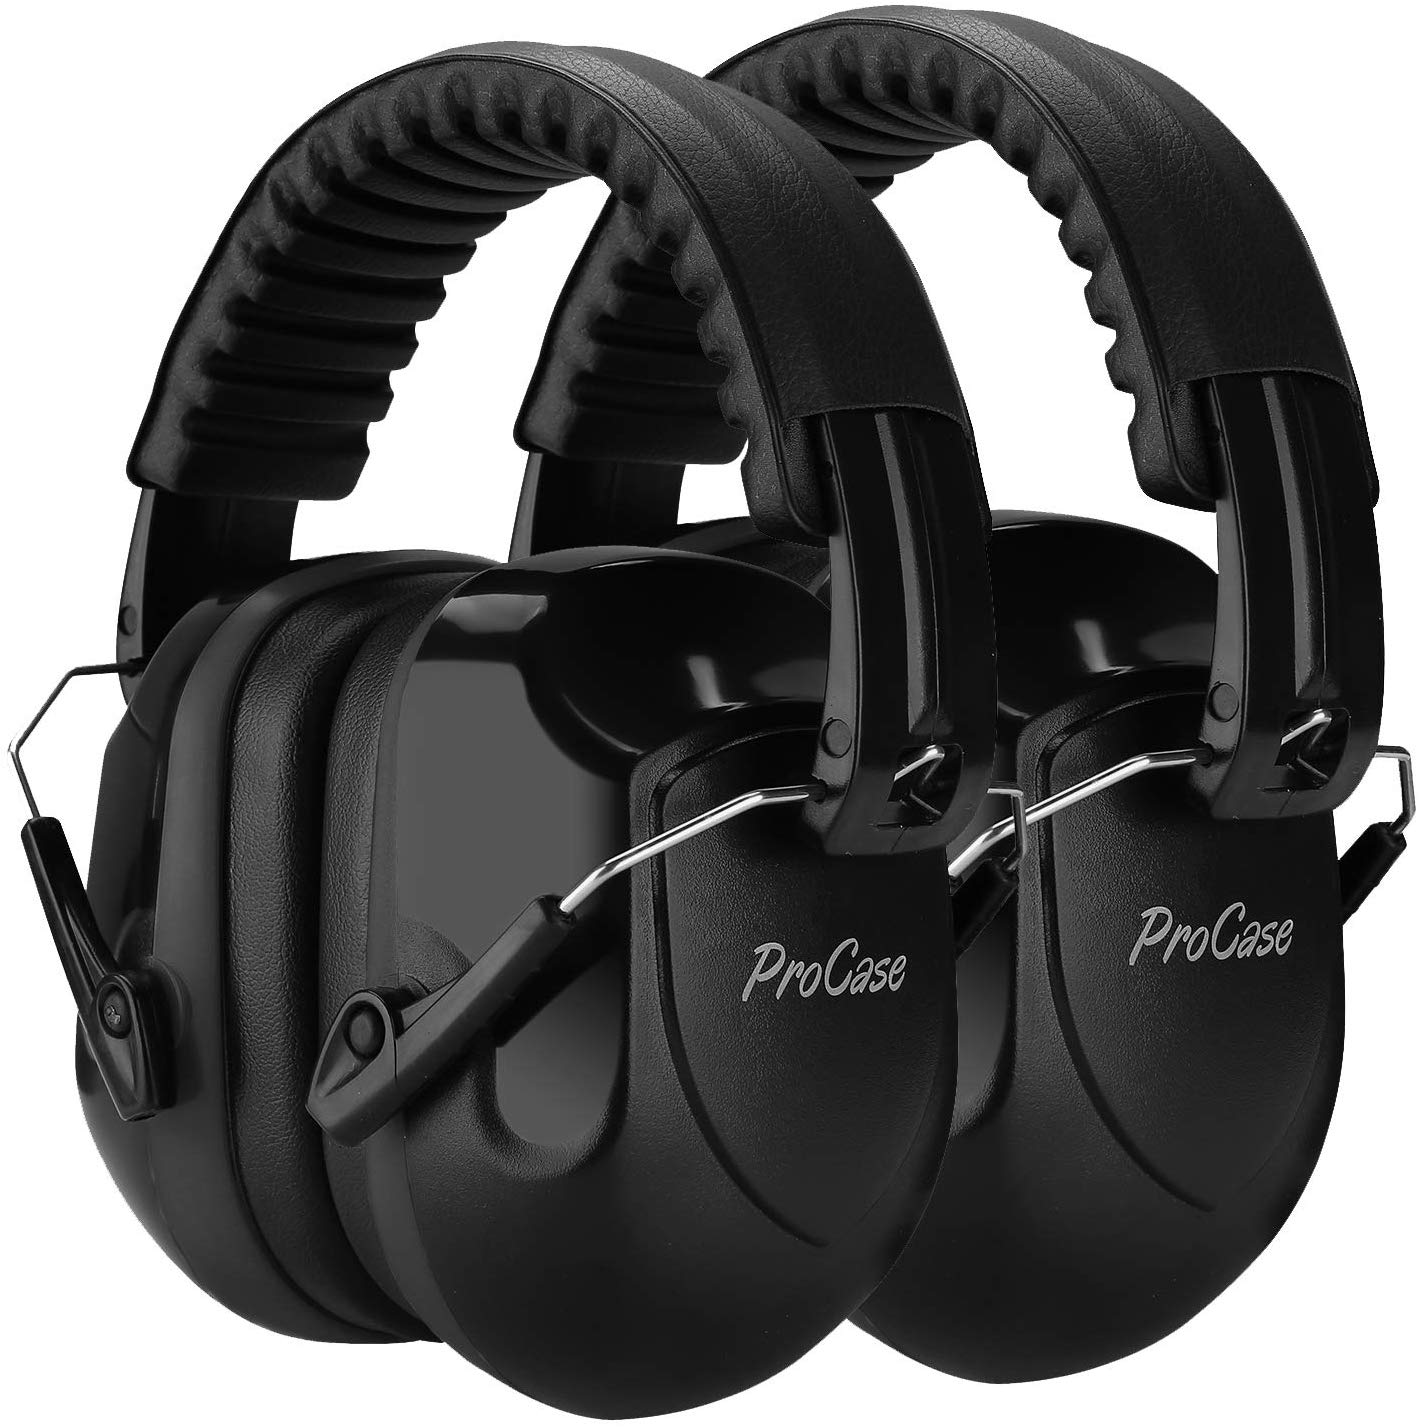 Noise Reduction Cancelling Ear Muffs - 2 Pack | ProCase